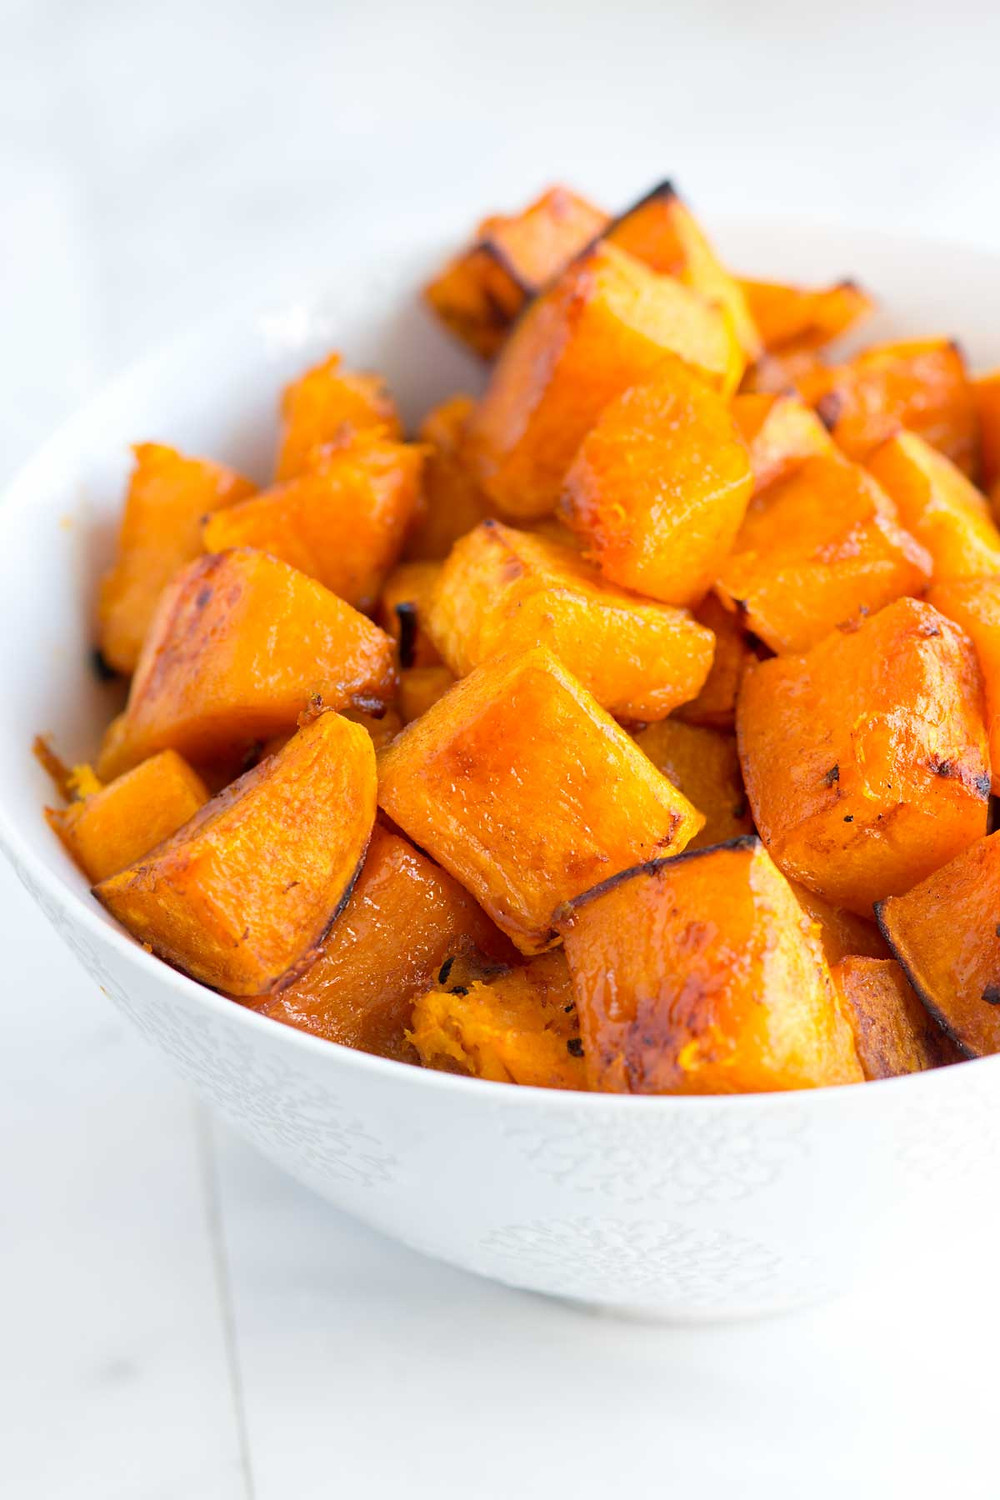 Health benefits of butternut squash include: It is low in fat and  high in fiber which makes it a heart friendly choice.  It provides a significant amount of potassium which is important for bone health, and vitamin B6, essential for the proper functioning of both the nervous and immune systems.